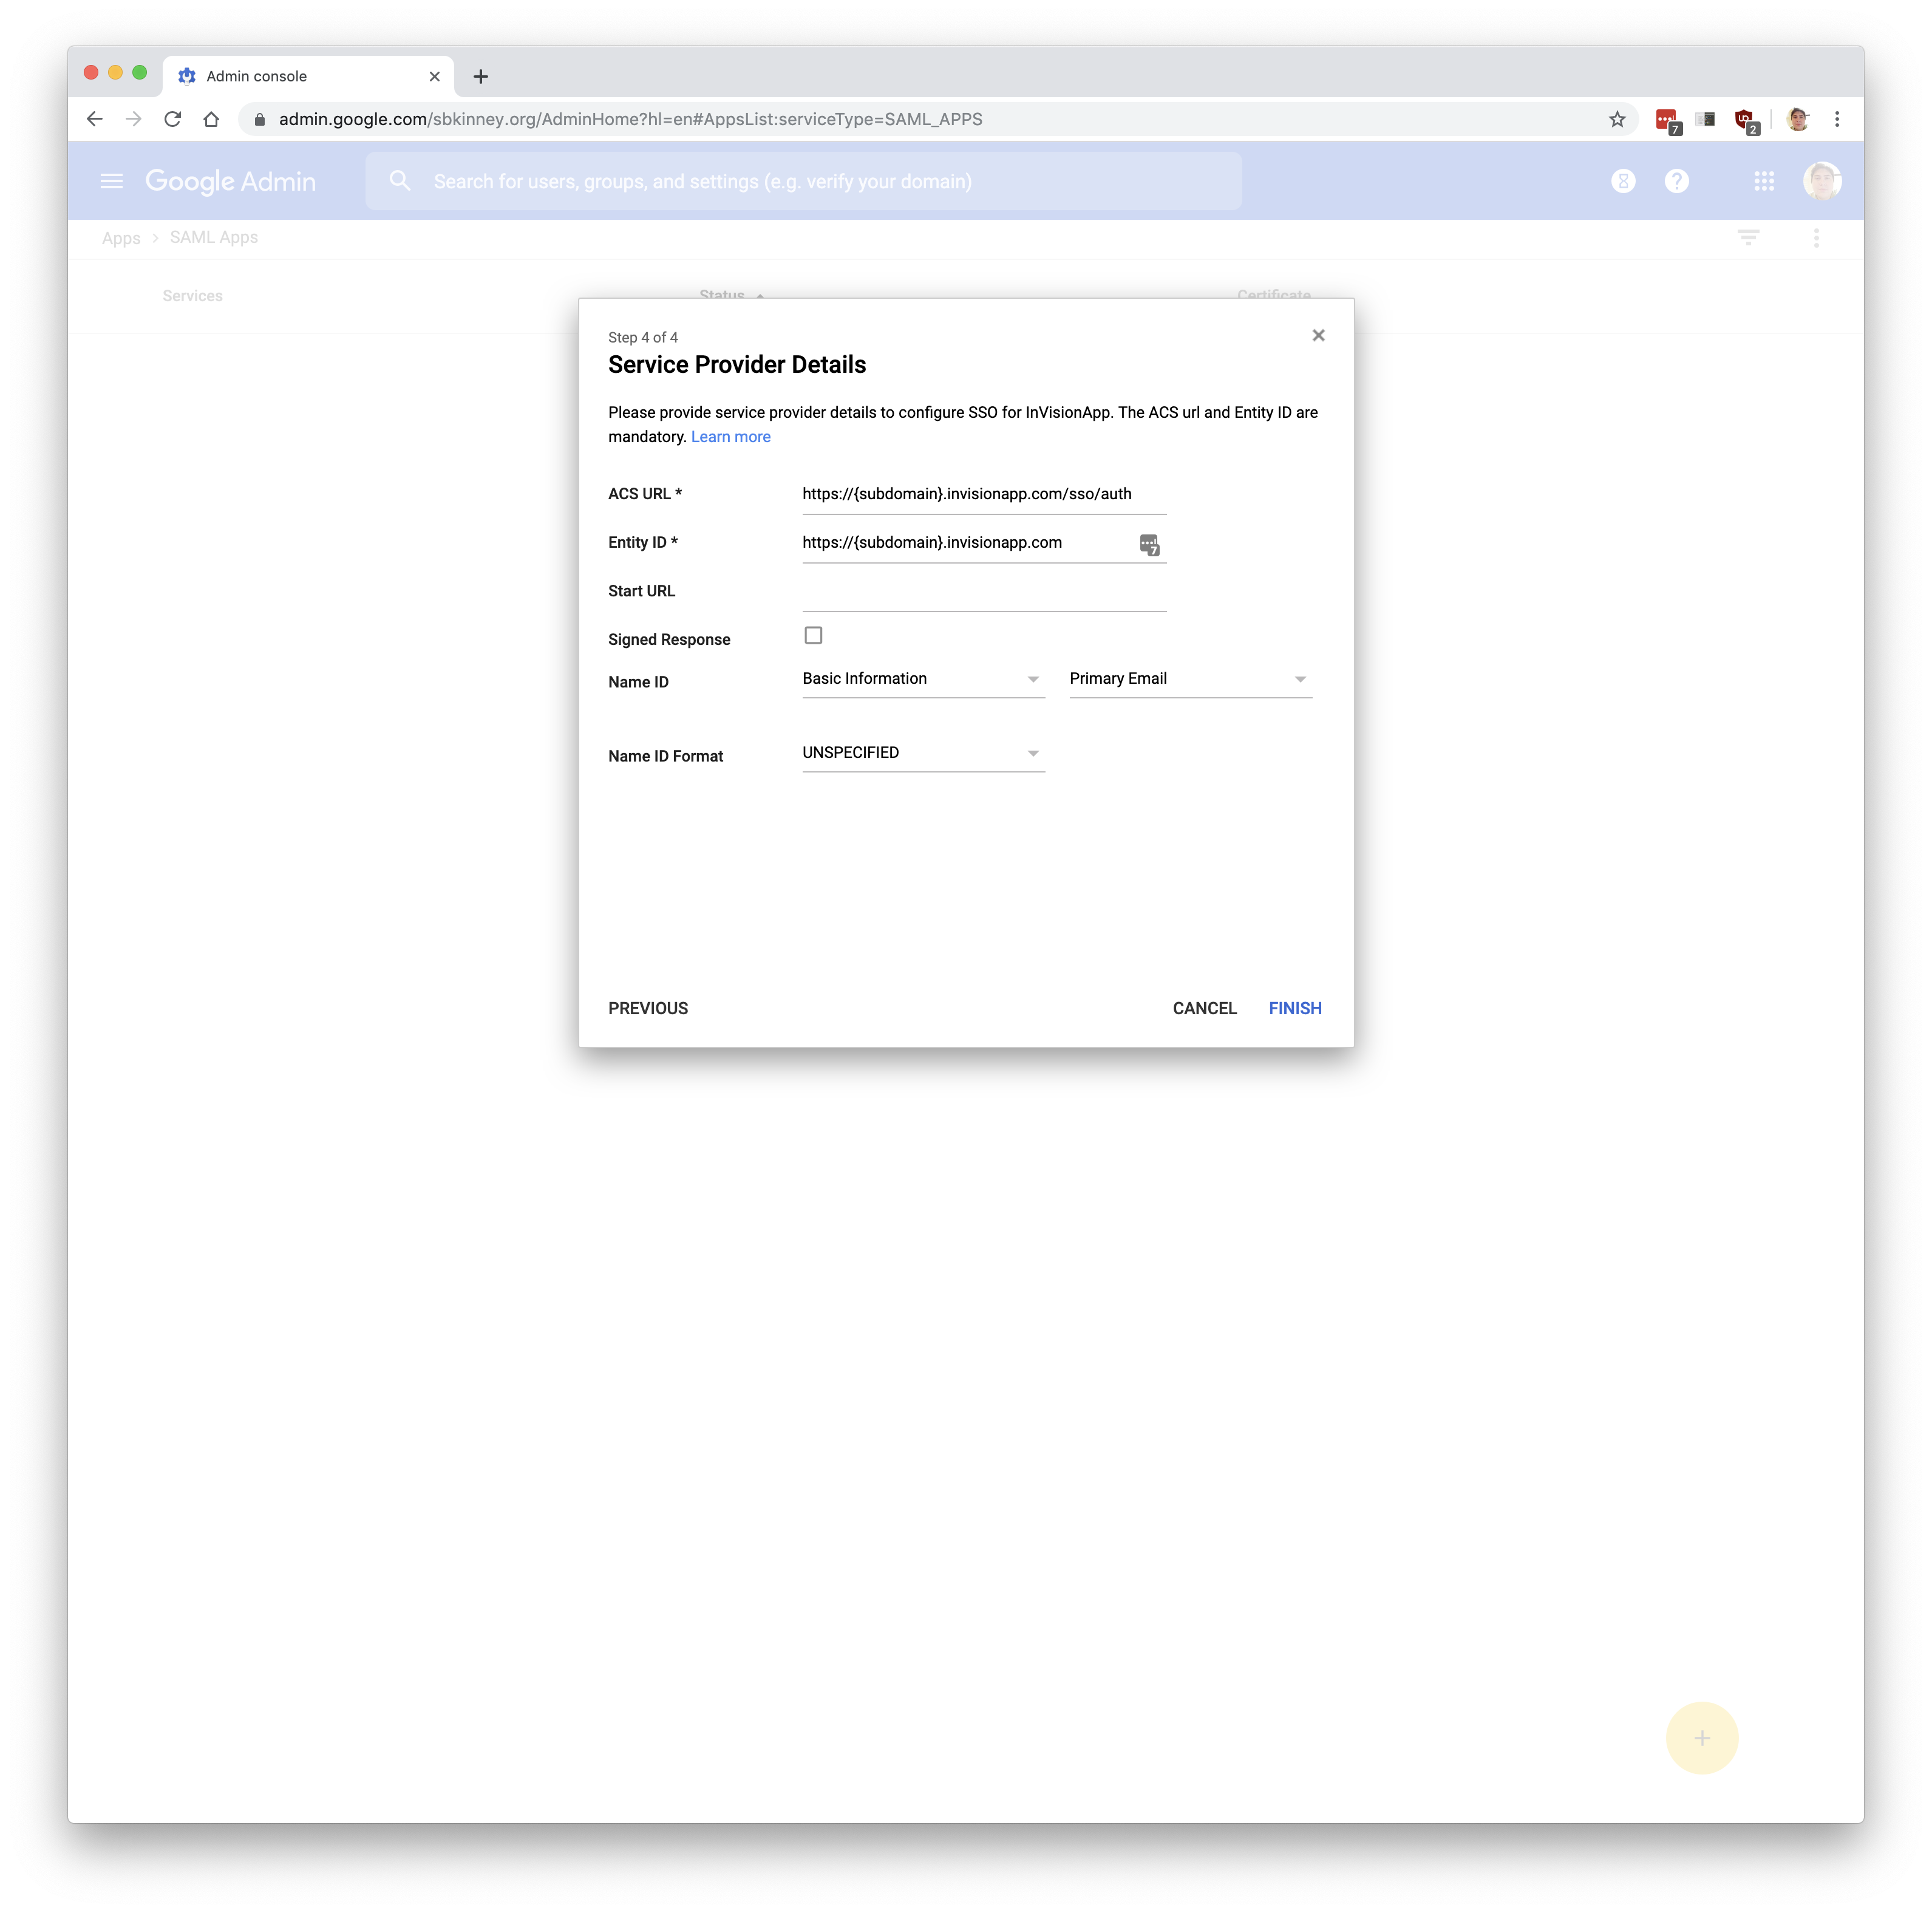 google-admin-console-apps-saml-invisionapp-service-provider-details.png